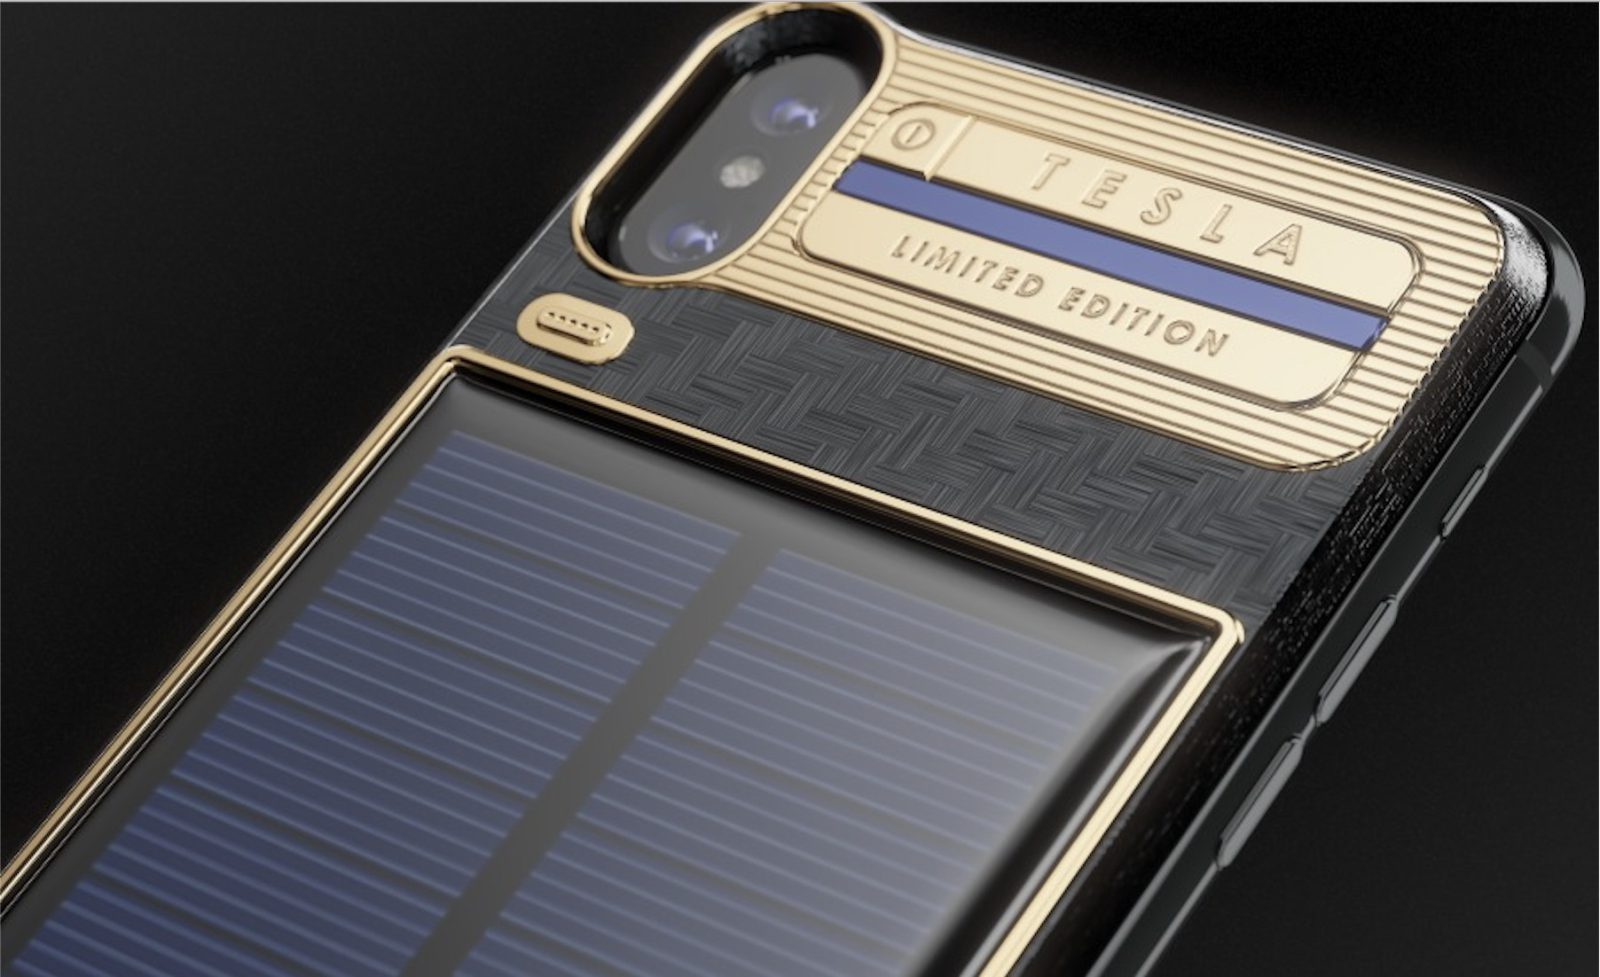 iPhone X luxury battery case with integrated solar panel hits market, but costs 4x phone price iphone-x-luxury-battery-case-with-integrated-solar-panel-hits-market-but-costs-4x-phone-price